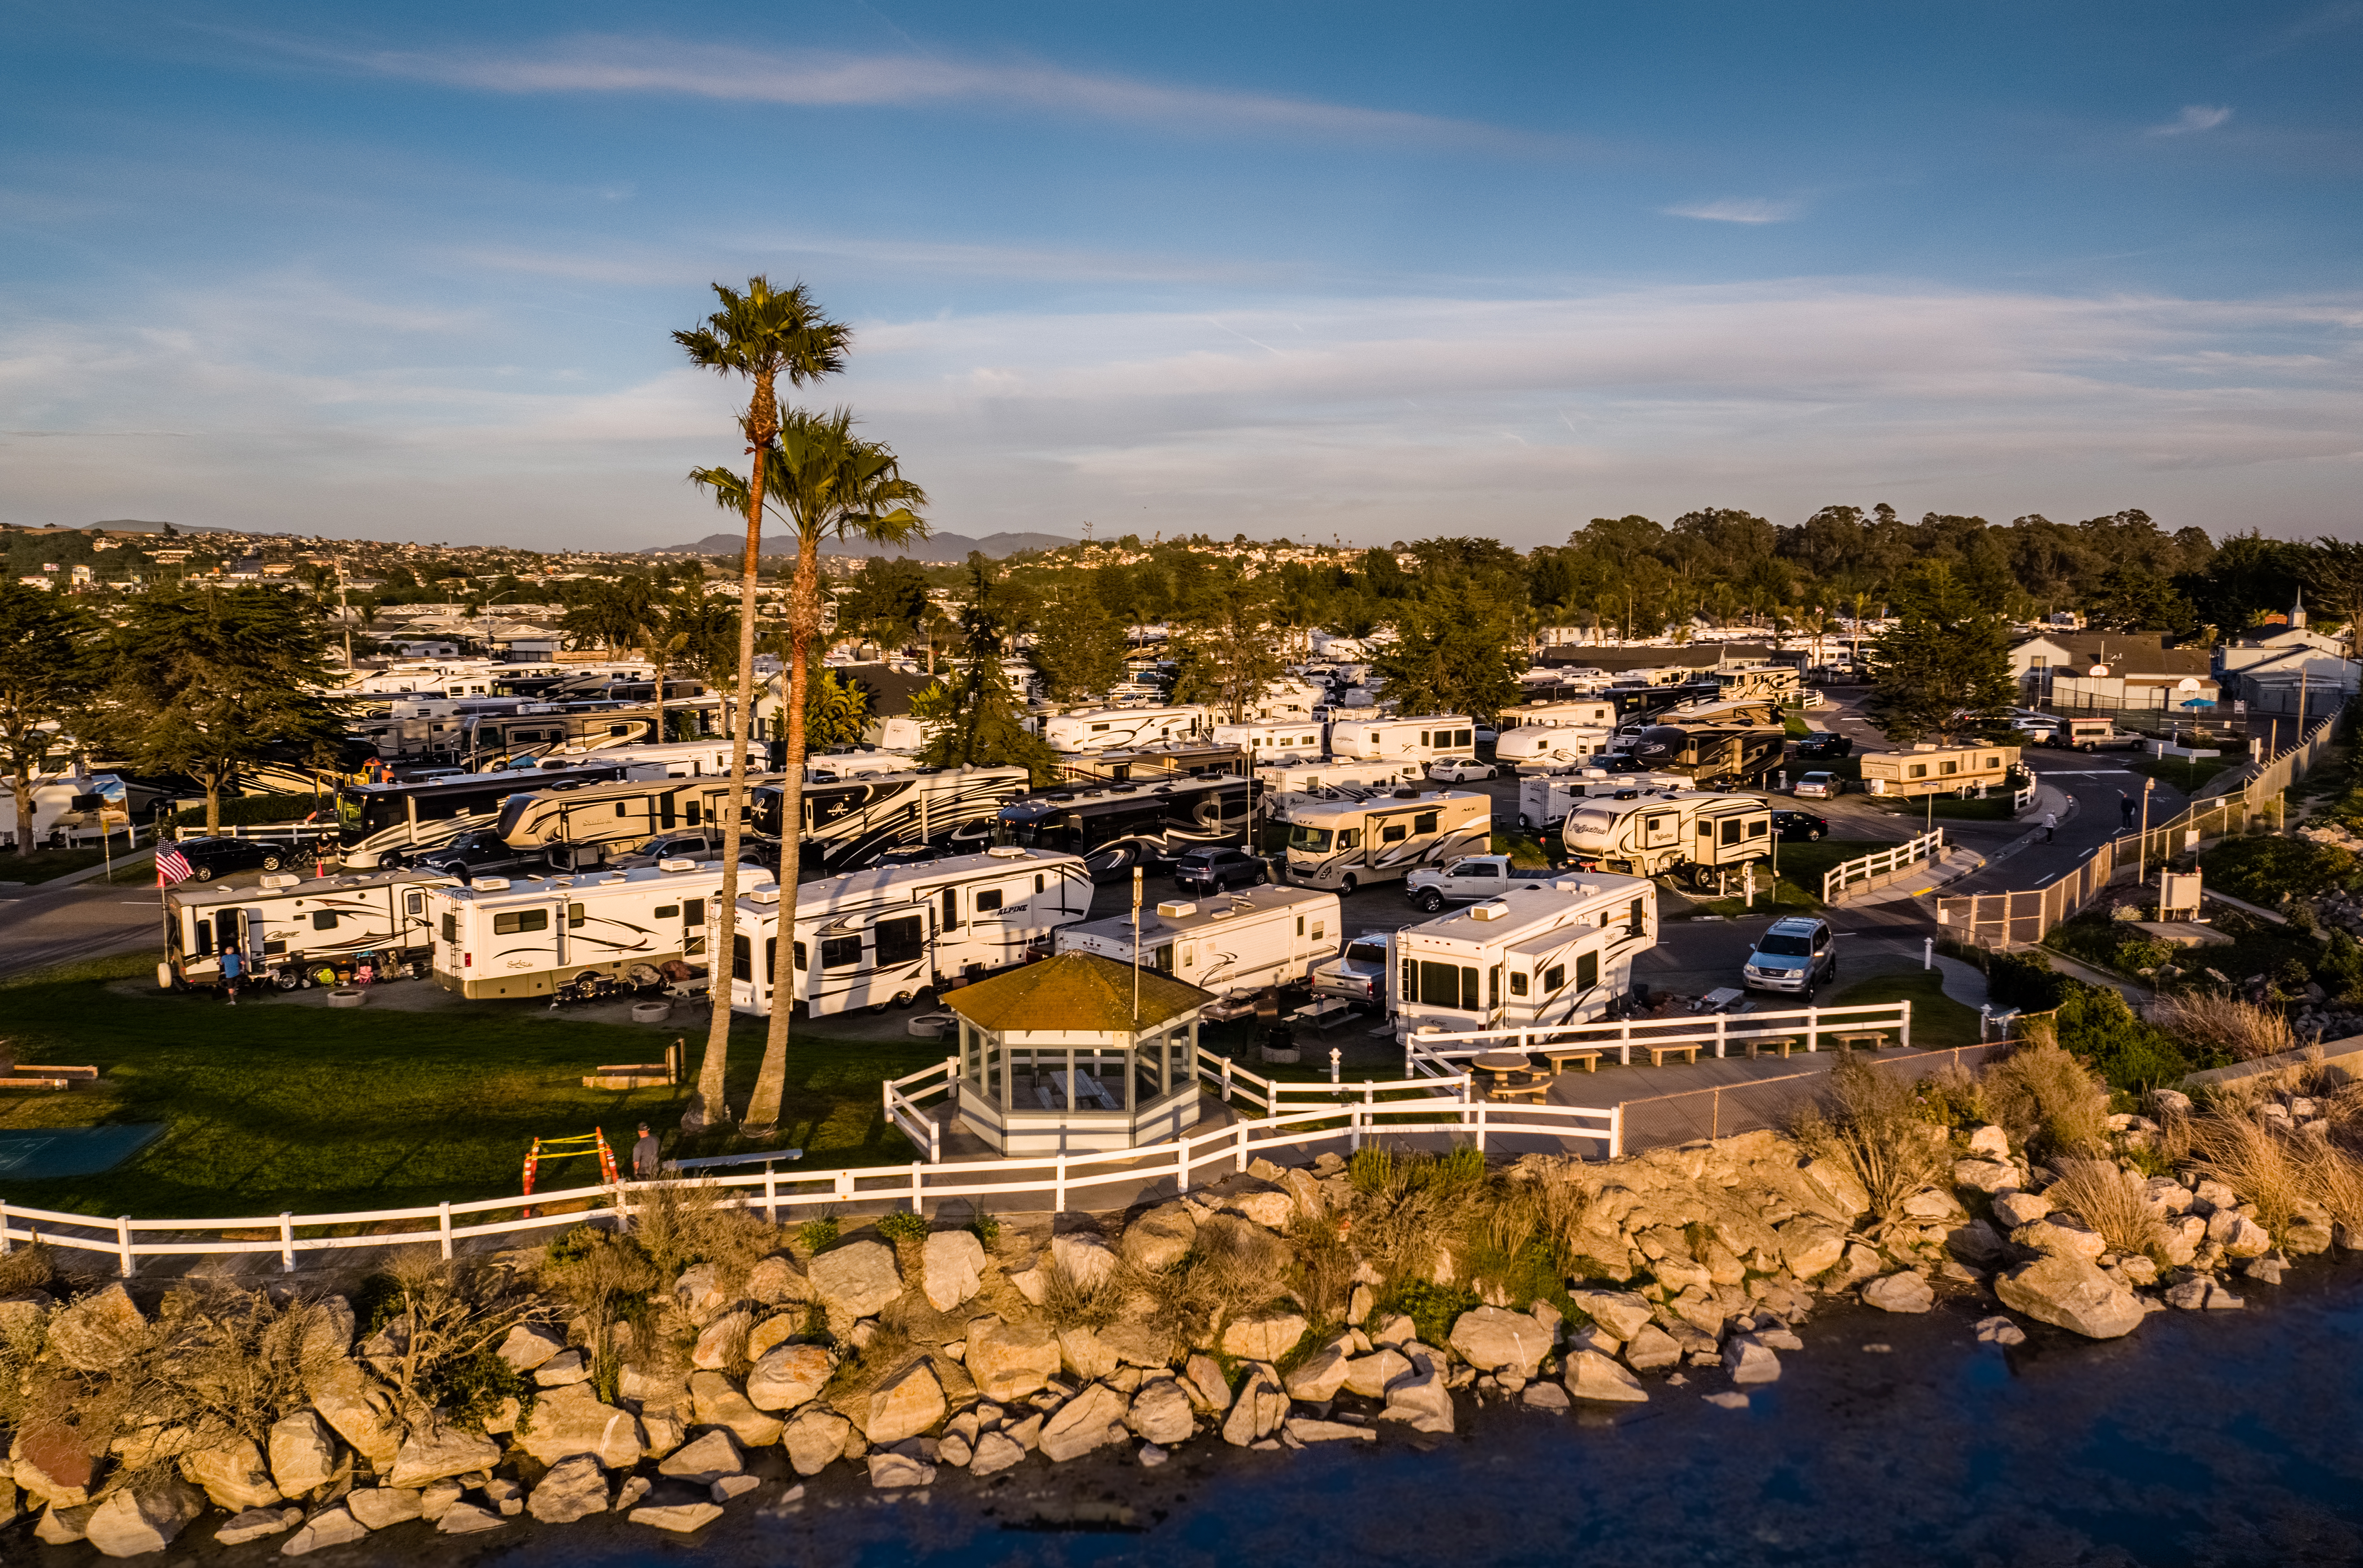 Aerial view of an RV park perched on a rocky bluff overlooking hte water.